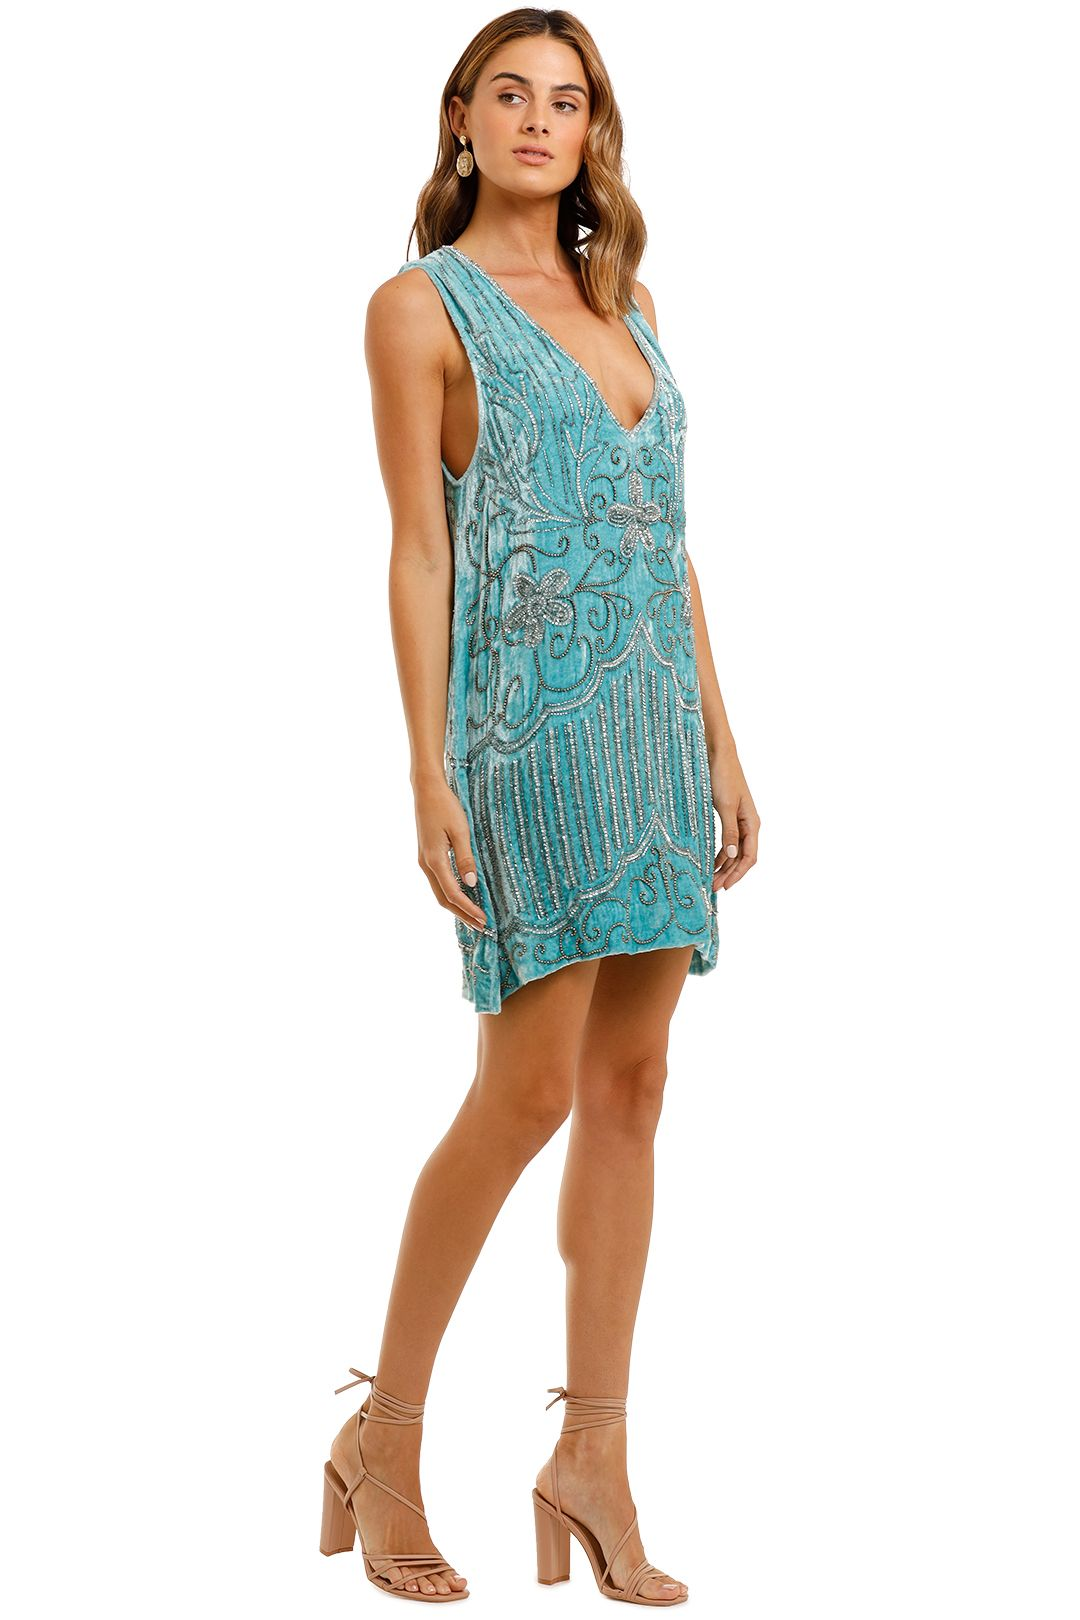 Spell Elsa Sequin Dress Opal velvet